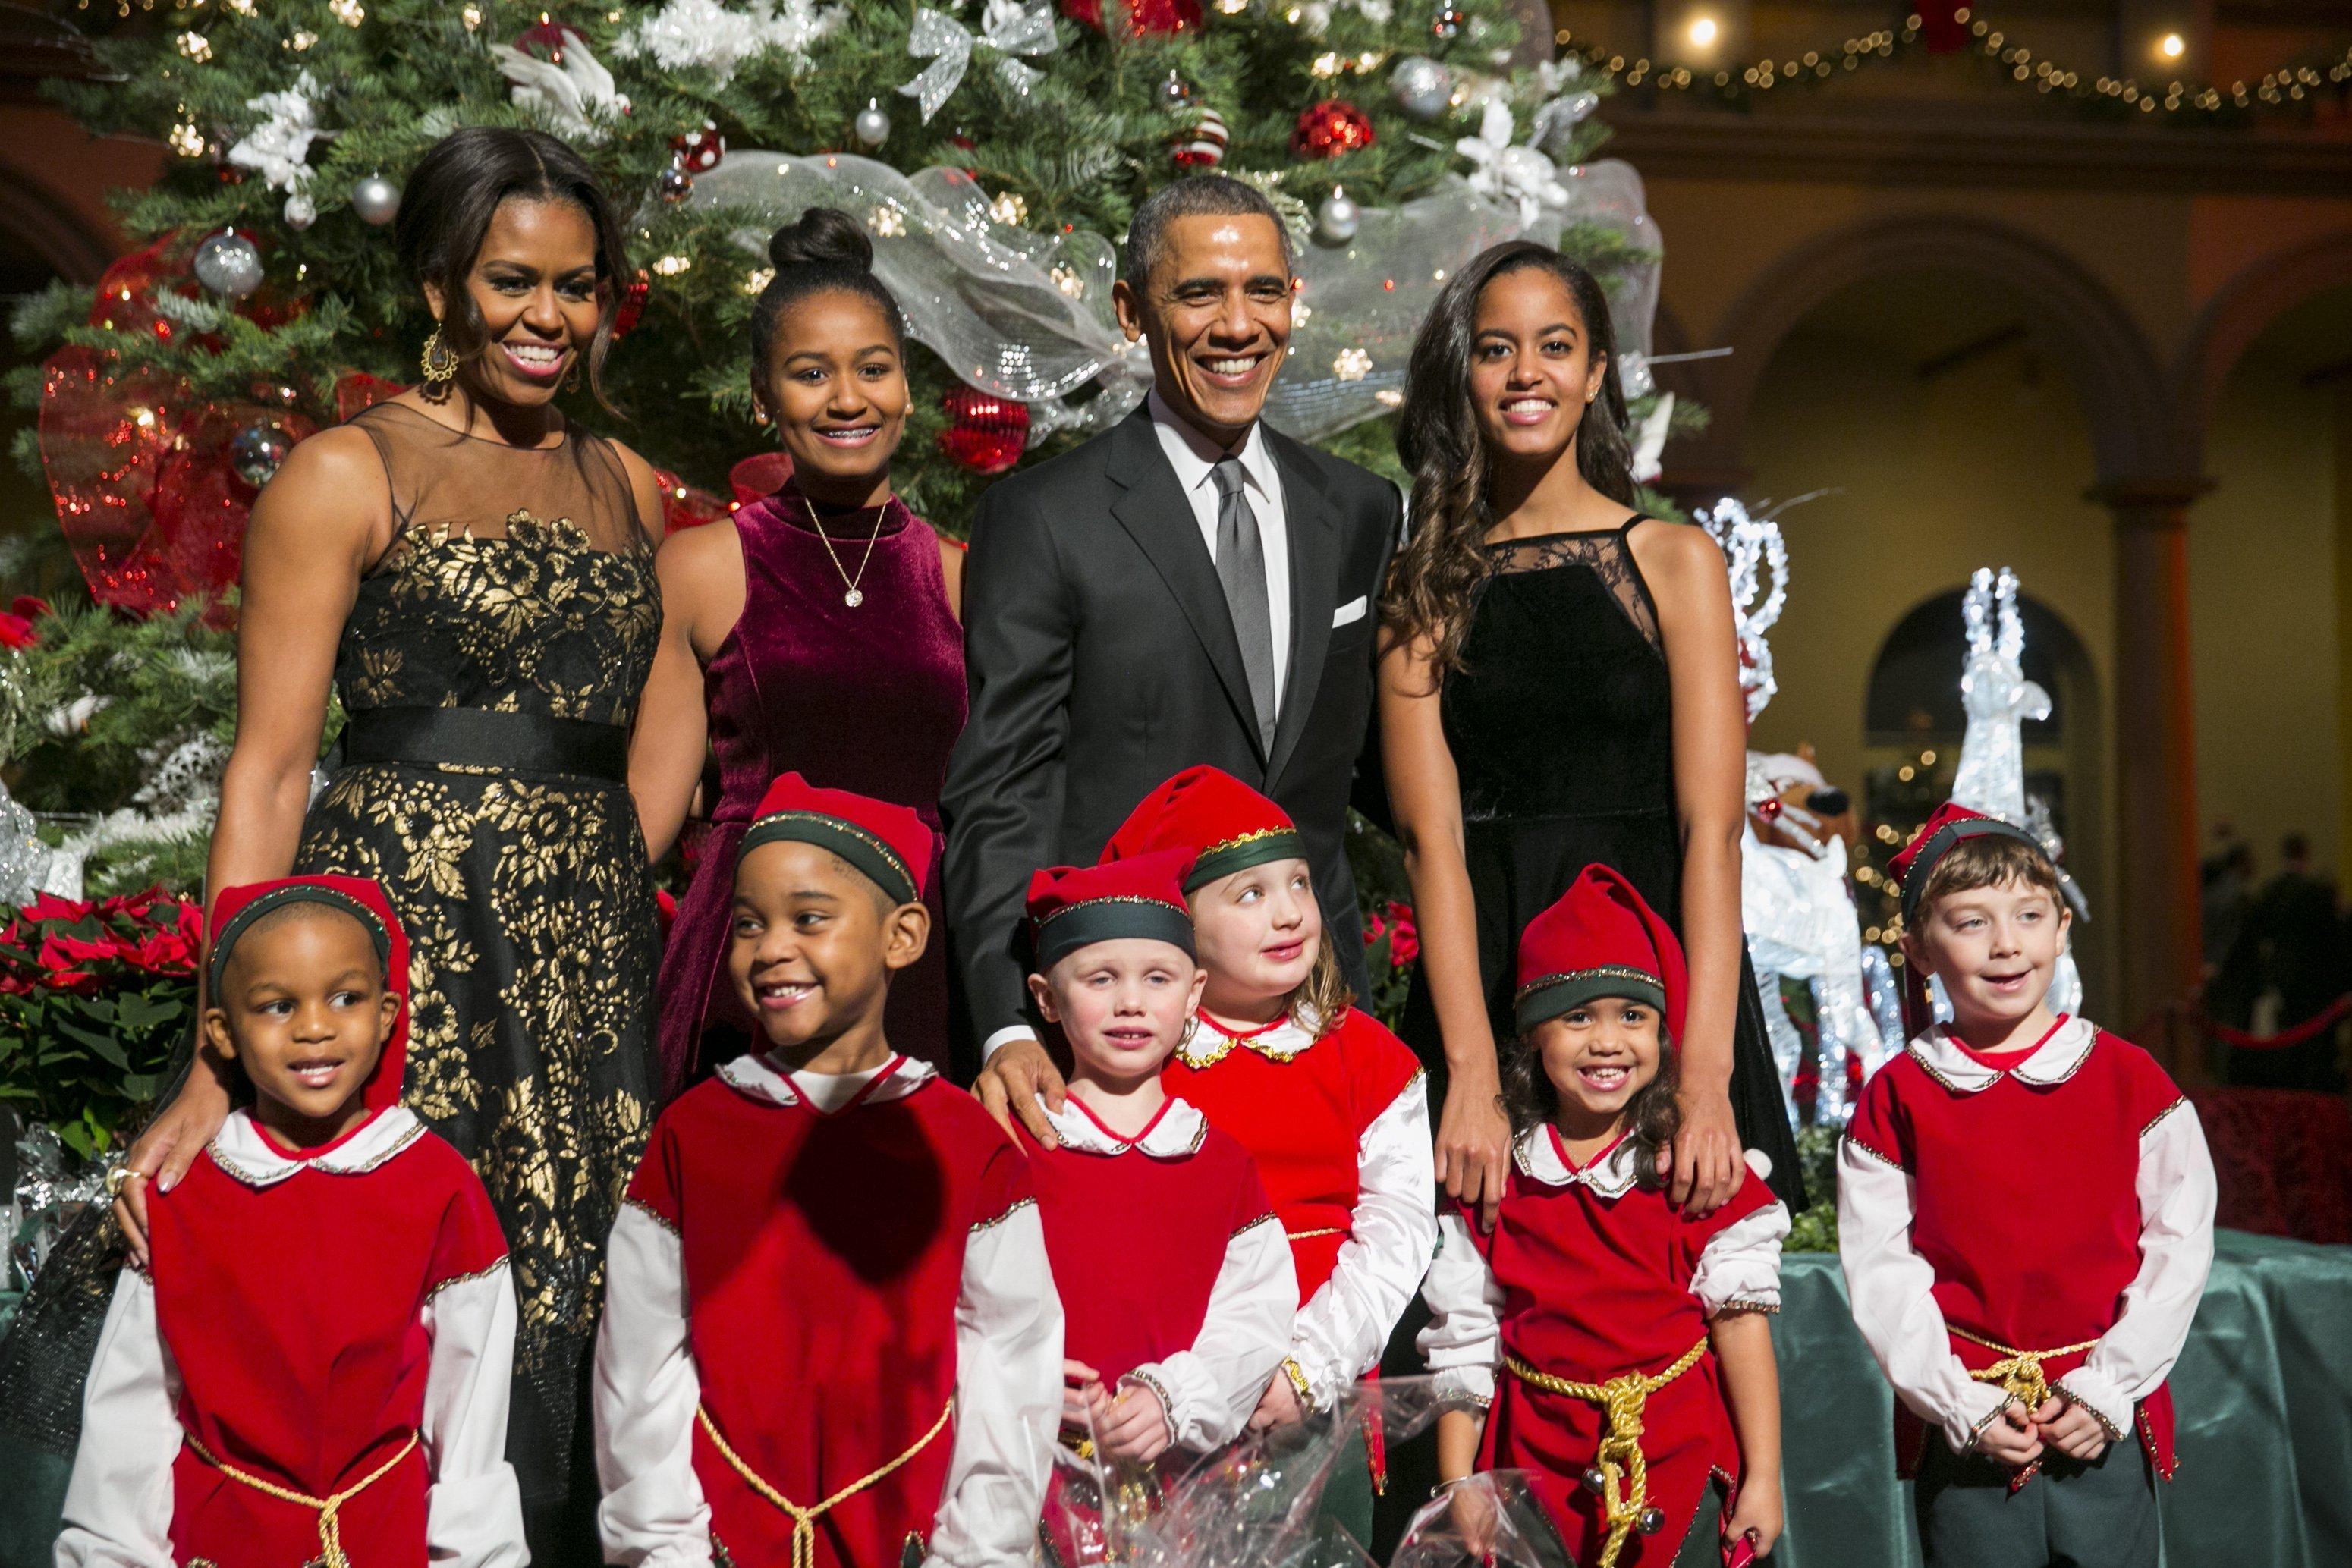 The Obamas at the 'Christmas in Washington' program on Dec. 14, 2014 in Washington, DC. | Photo: Getty Images.